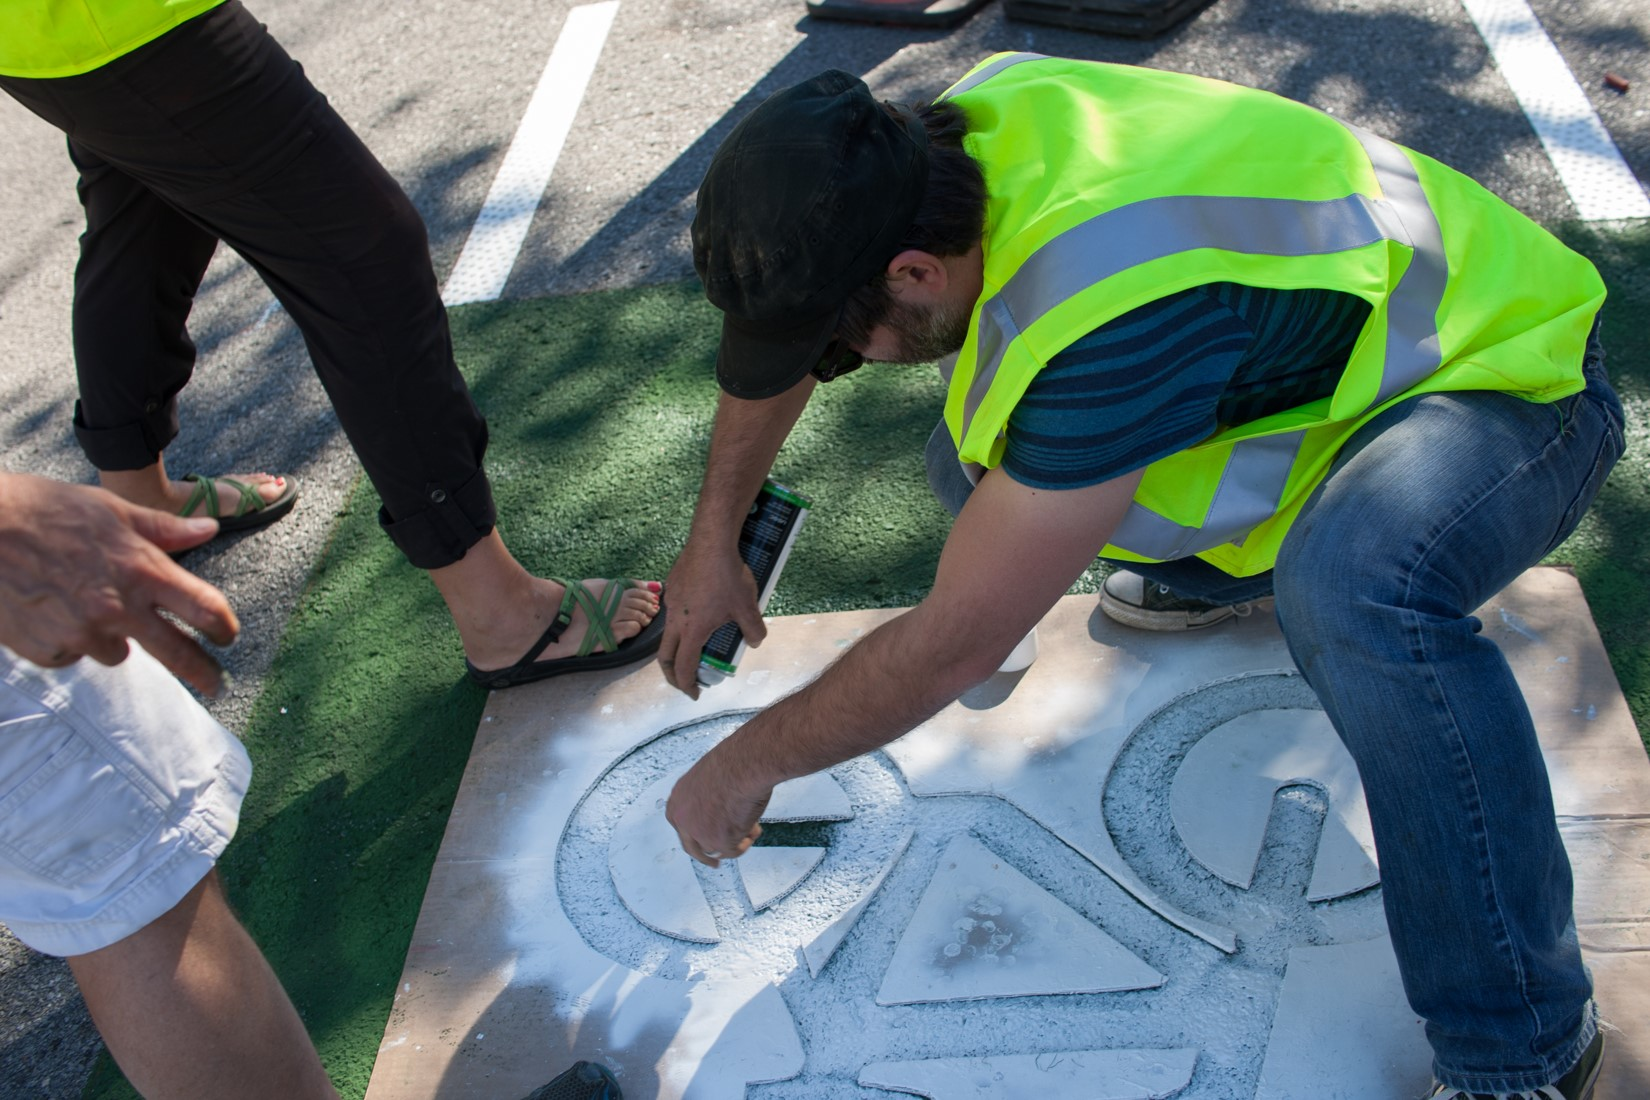 Volunteers install shared lane markings along a Neighborhood Greenway Demonstration Project in Bentonville, AR